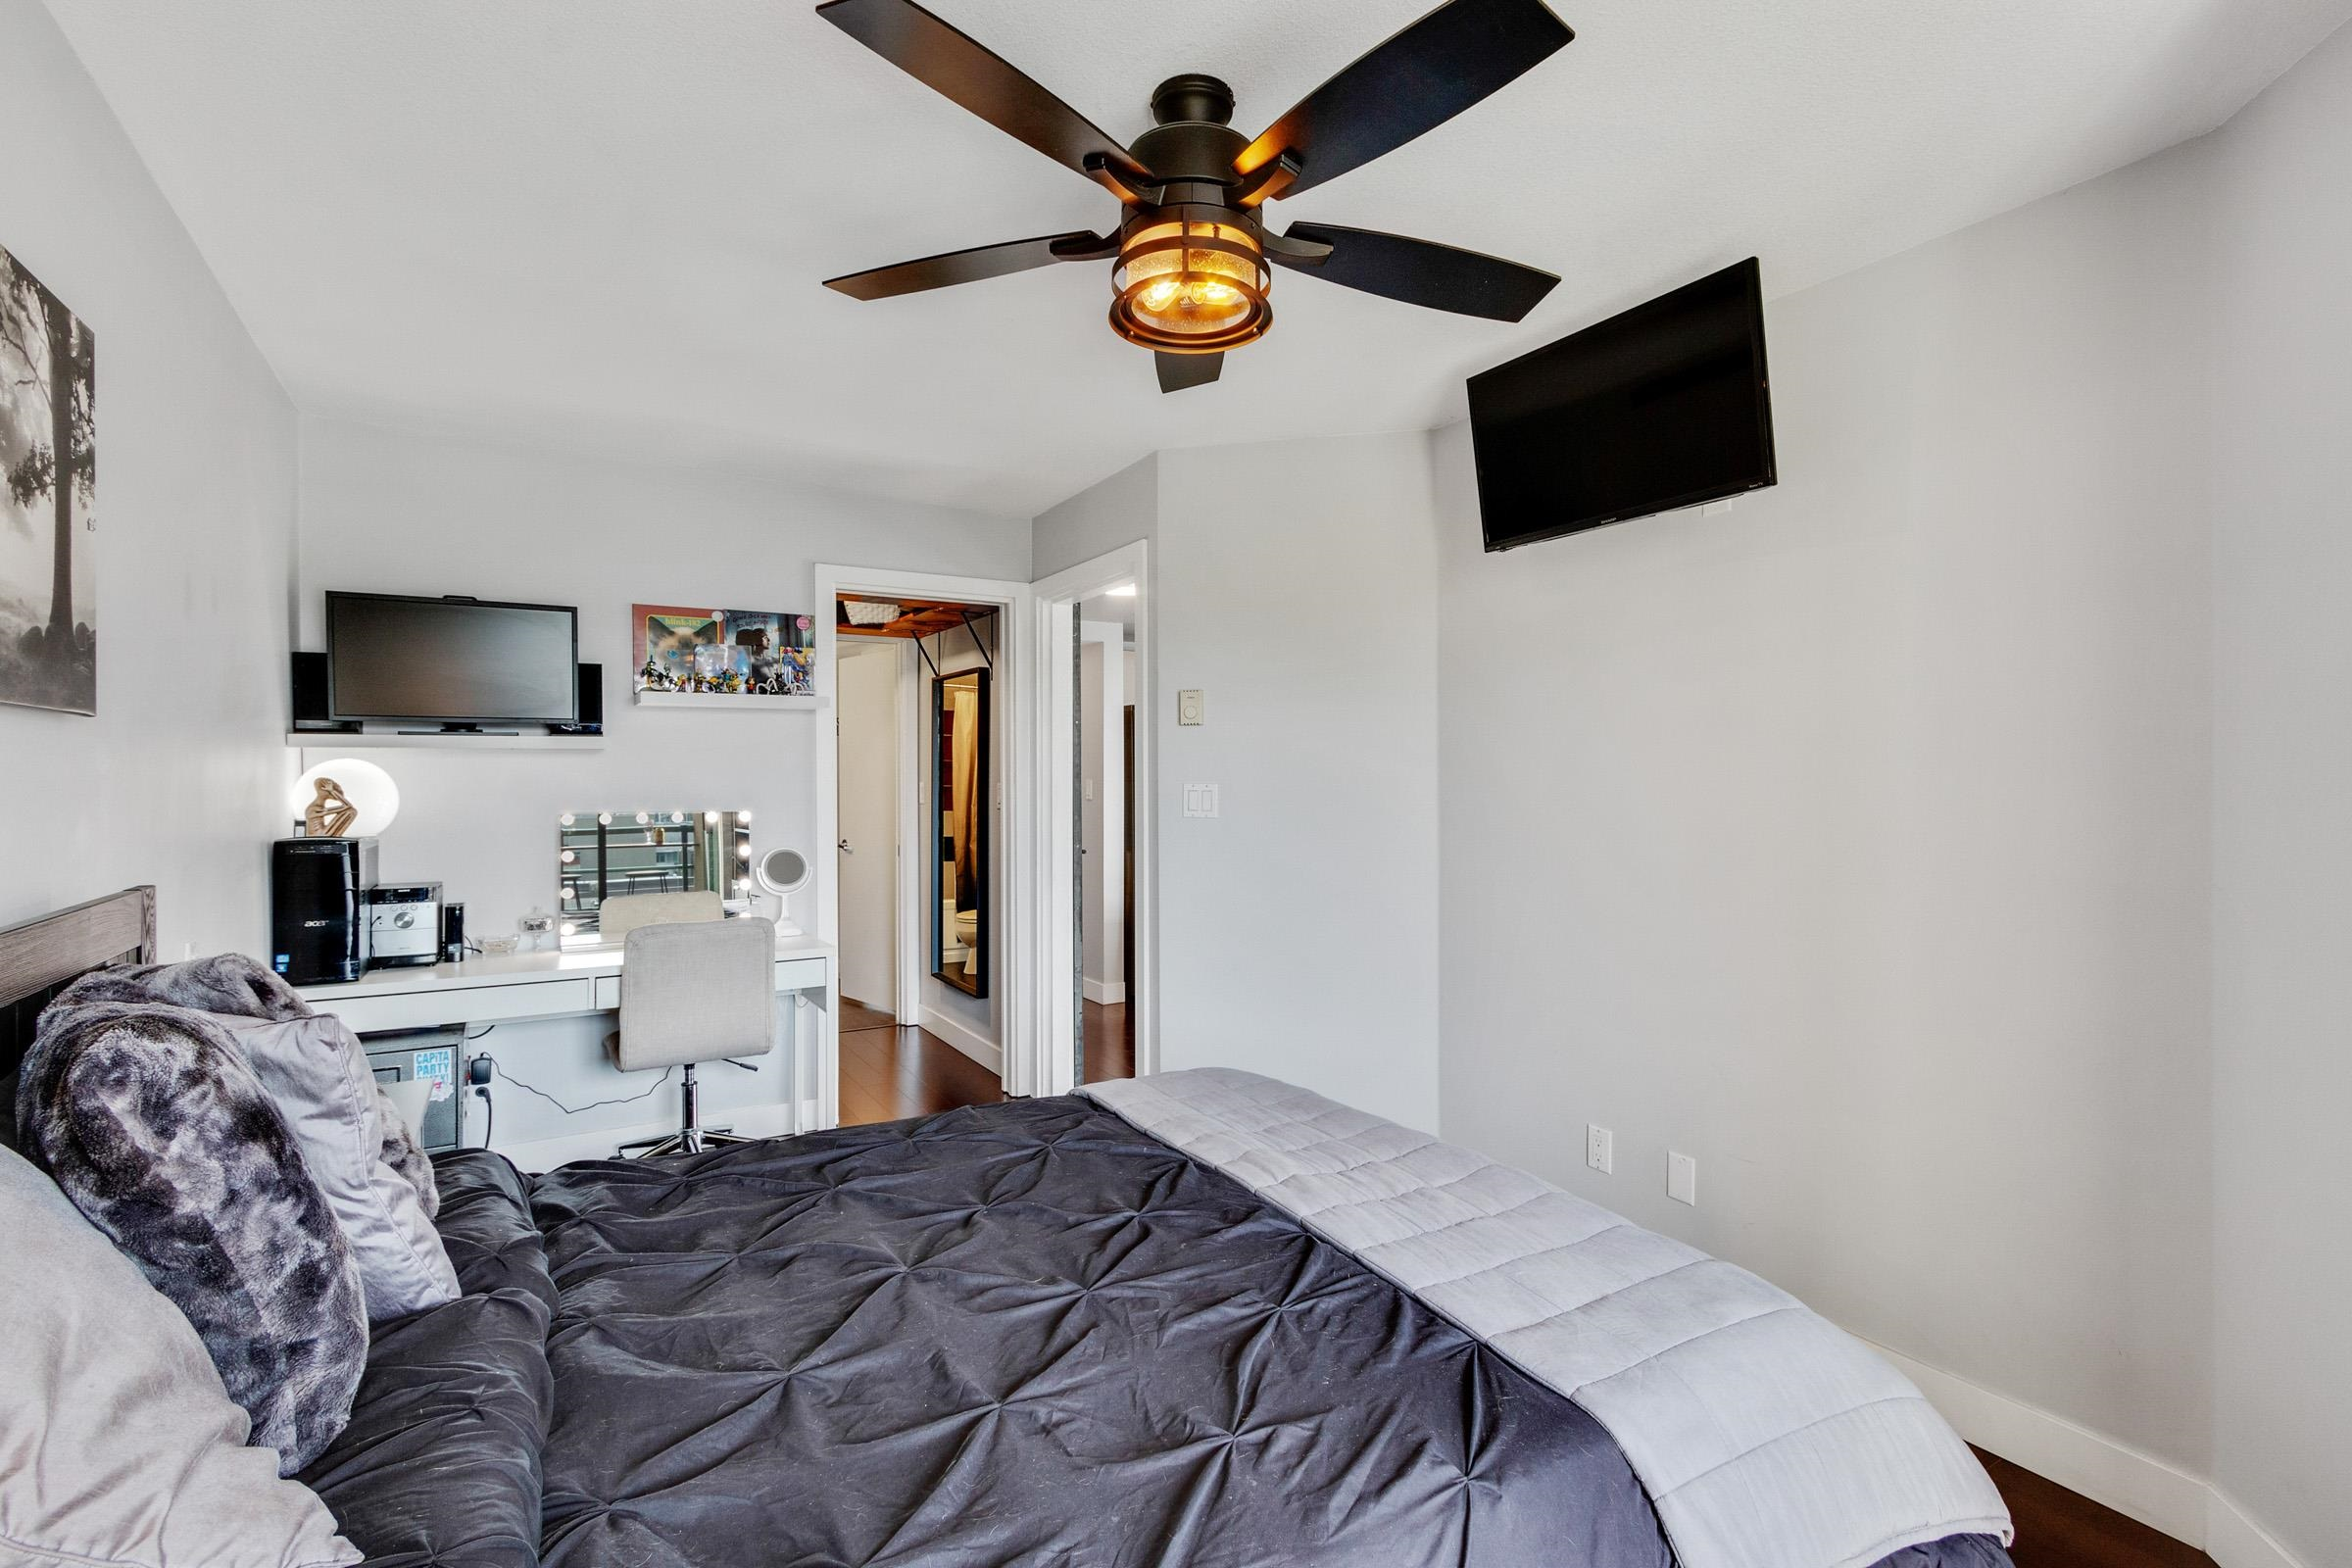 Listing image of 405 212 LONSDALE AVENUE